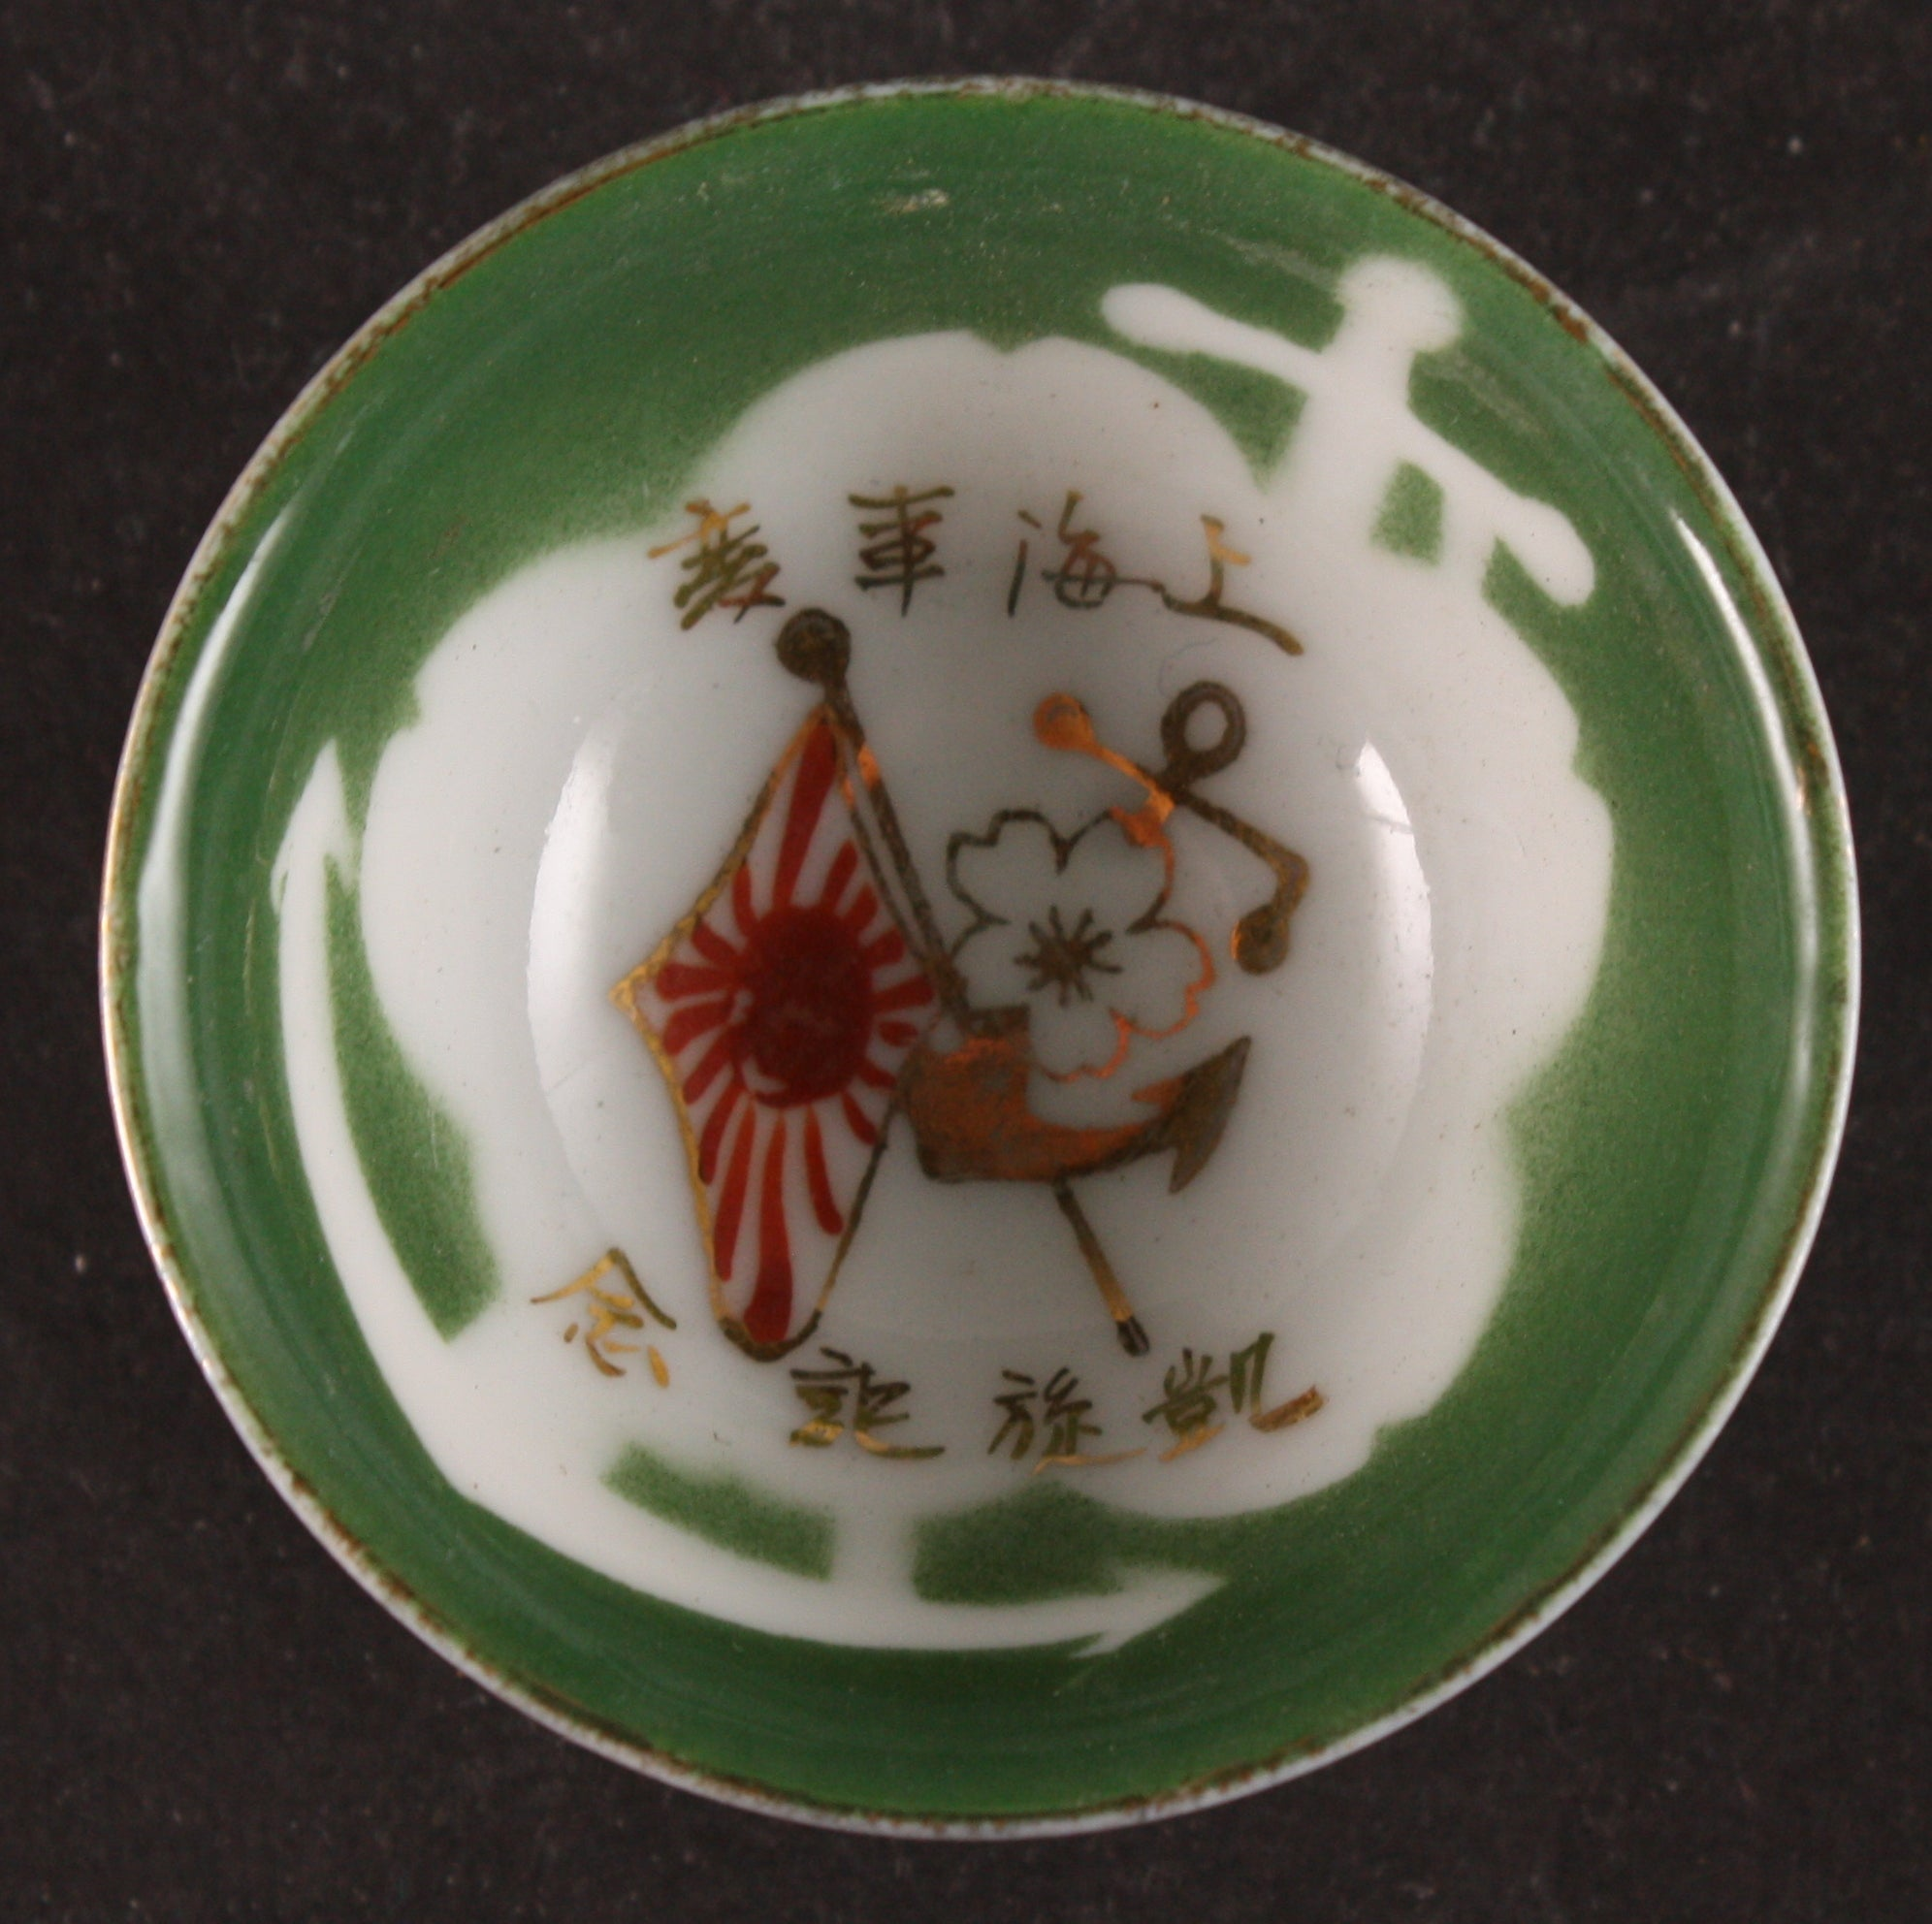 Rare Antique Japanese Military 1931 Shanghai Incident Navy Sake Cup